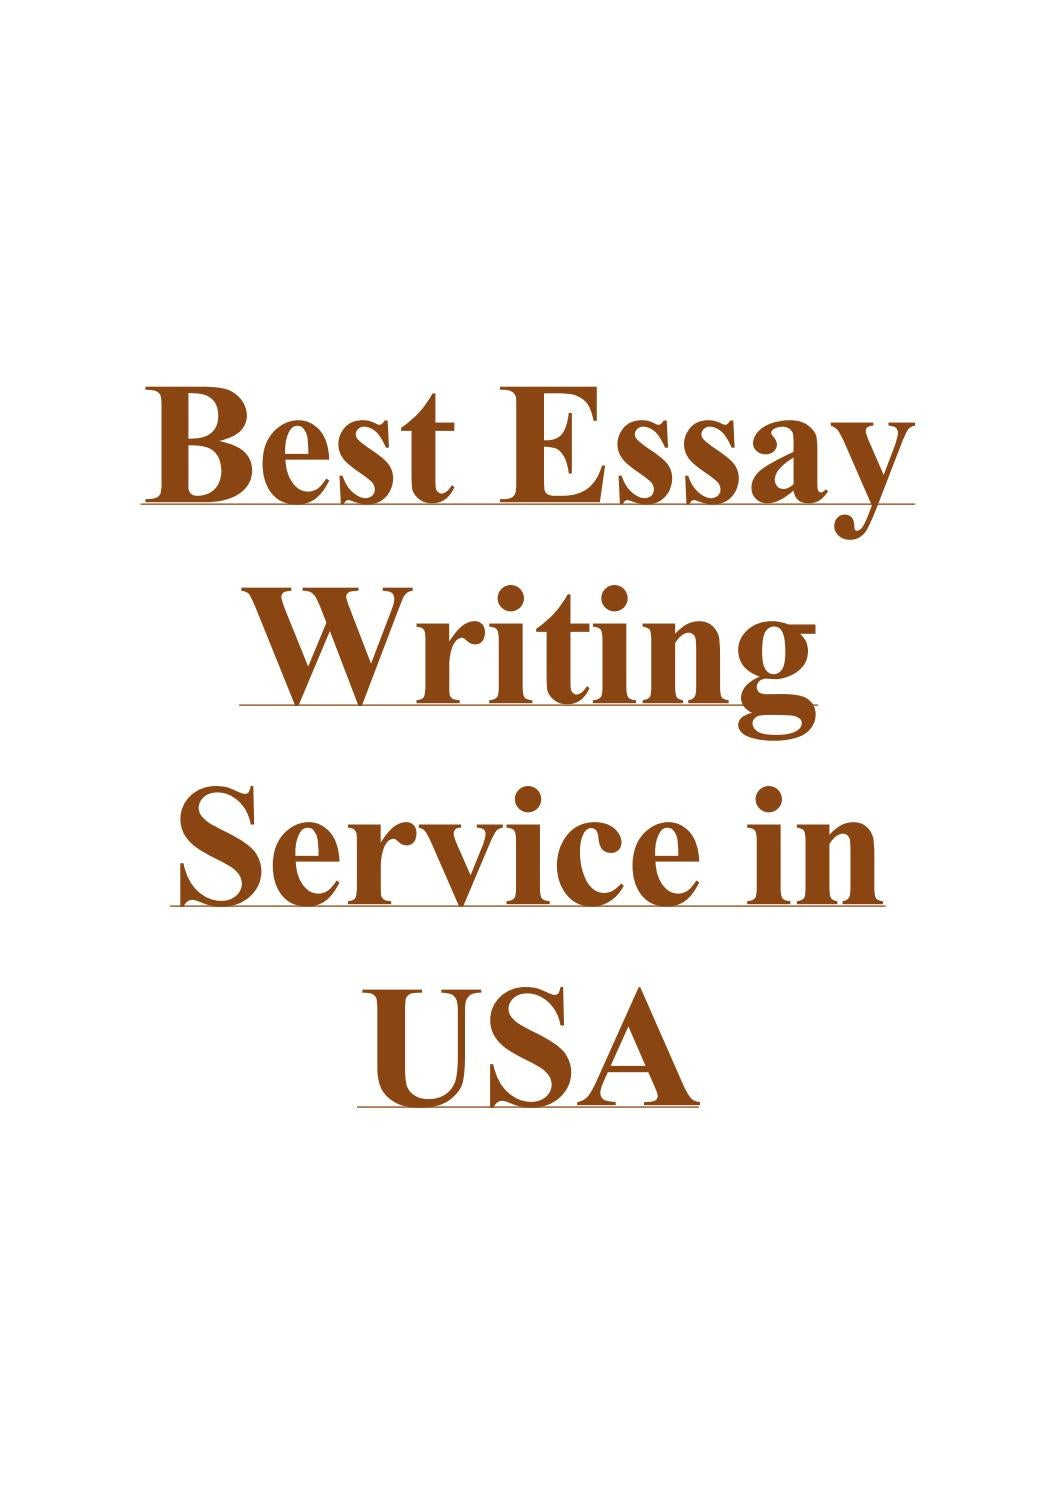 Best EssAy WrITIng SerVice In USA EXCeLSIOR SPRINGs By